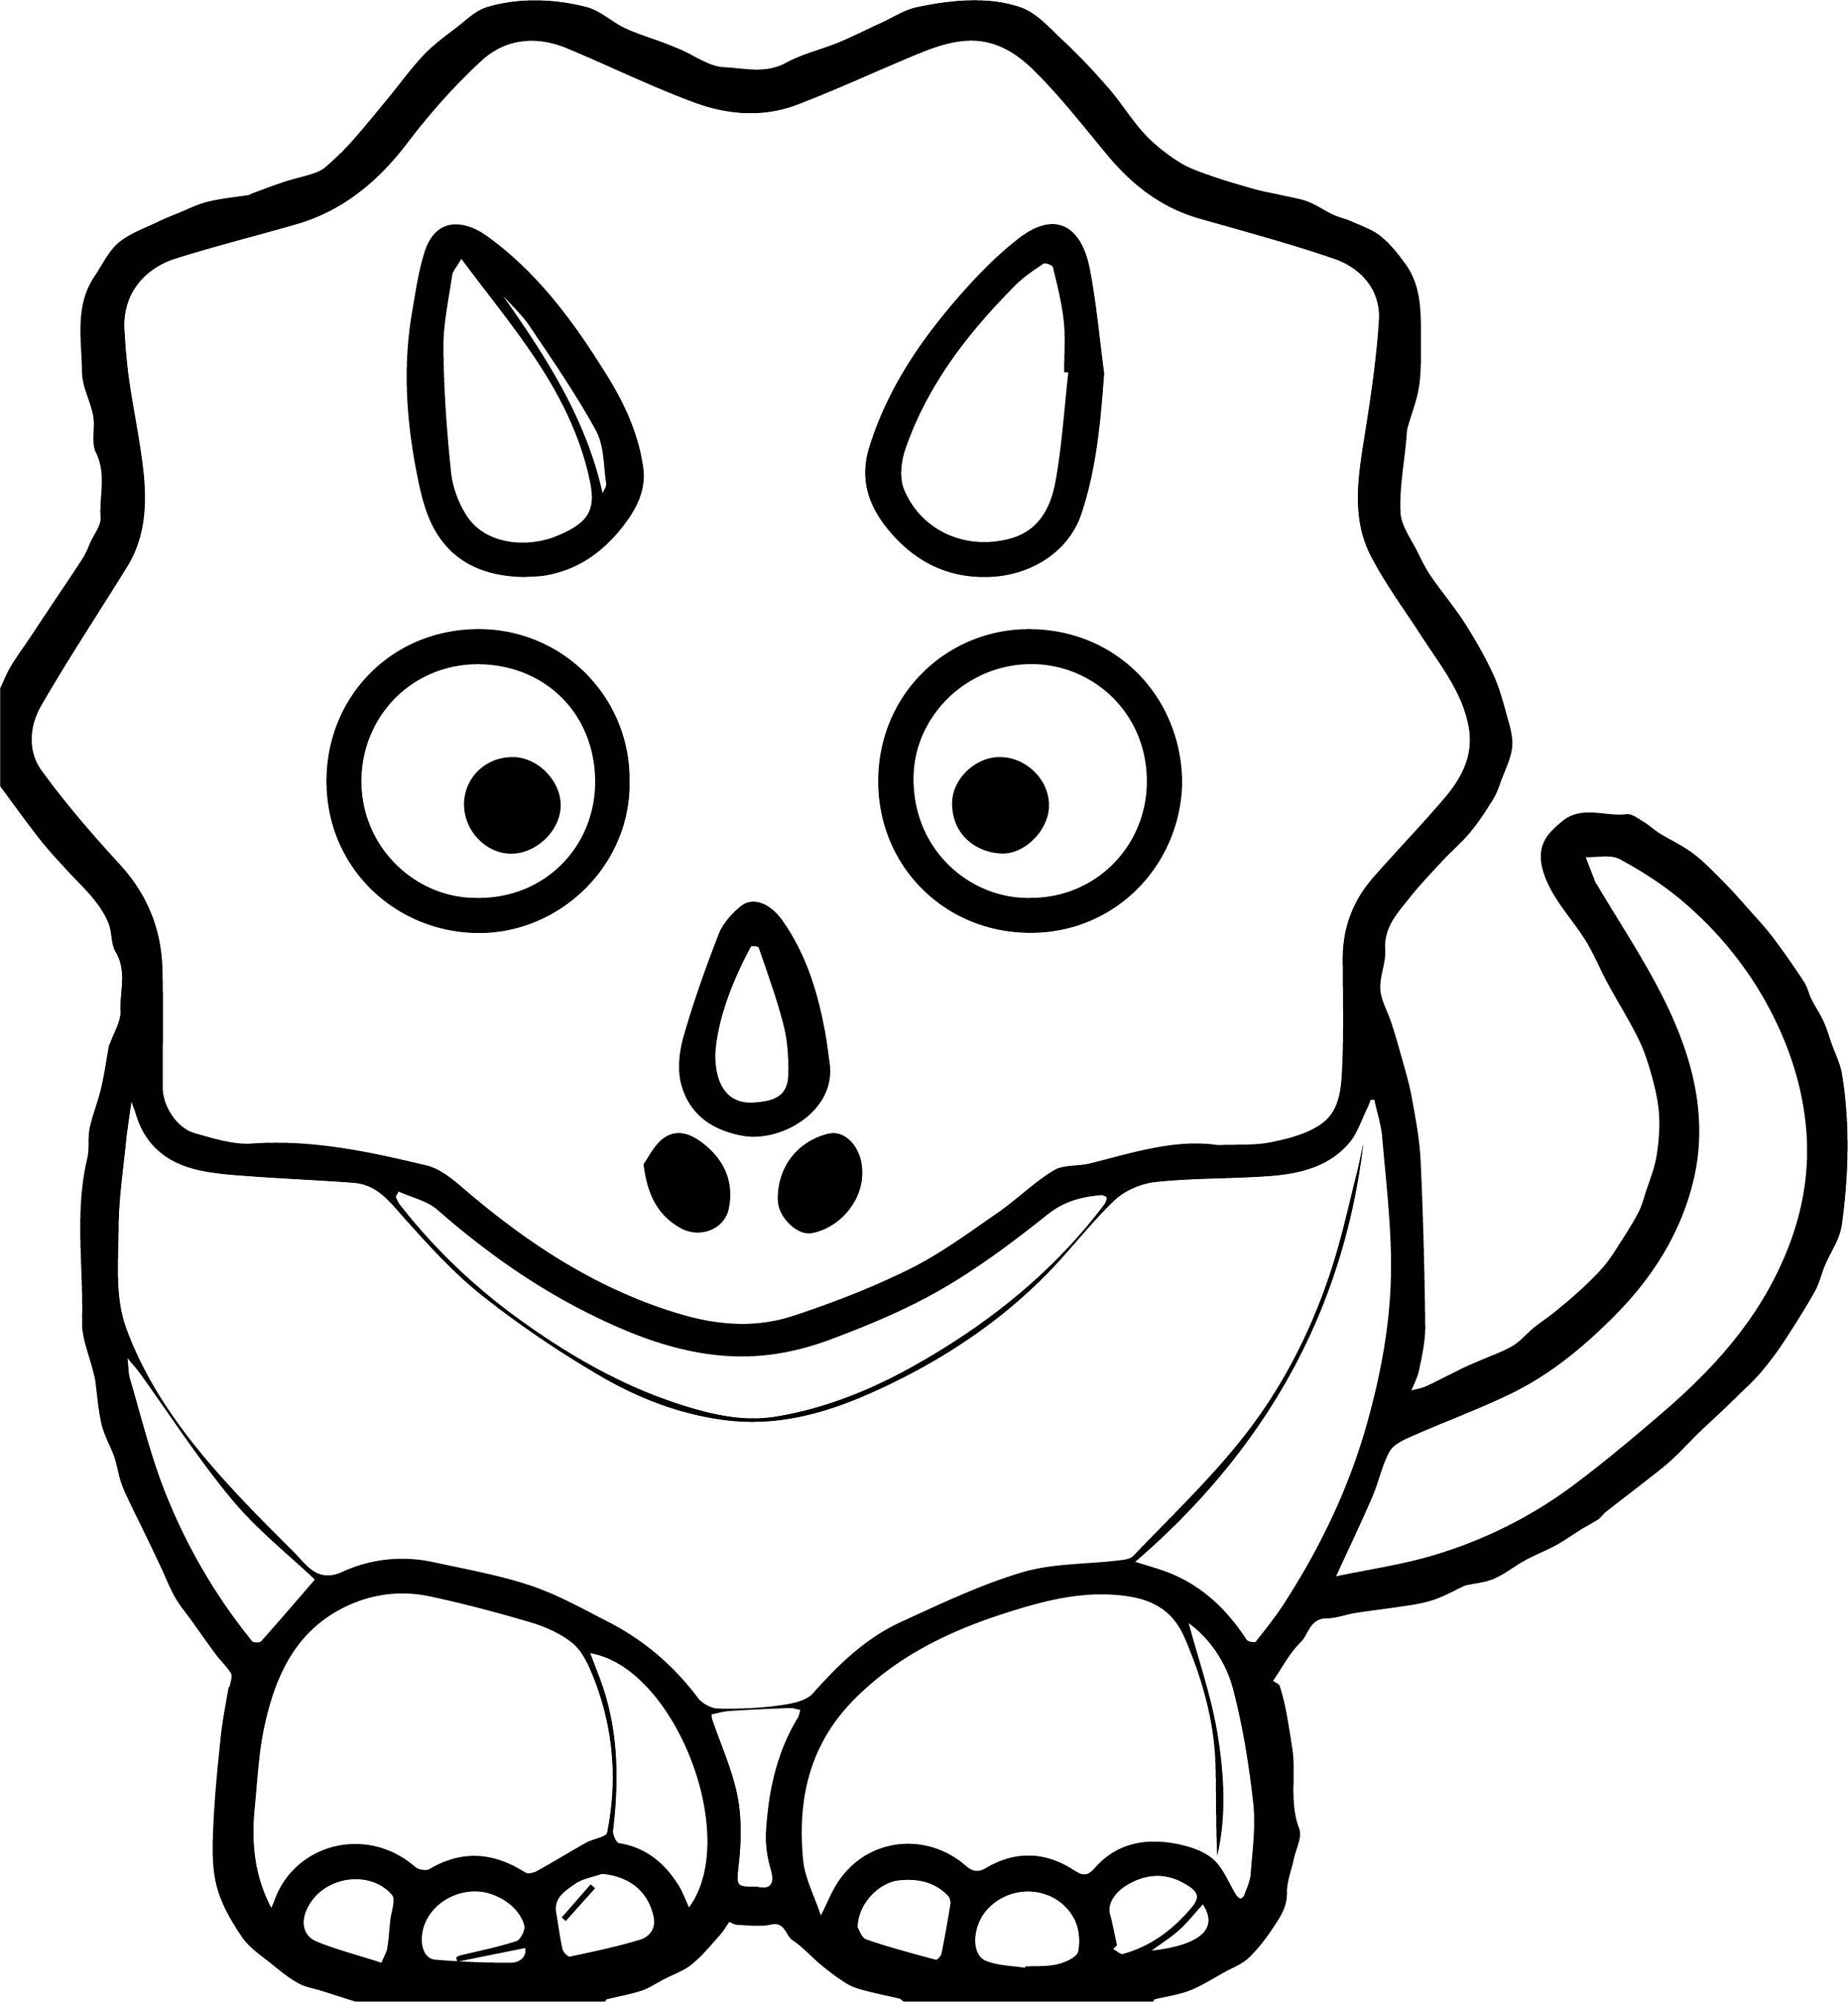 dinosaur templates free baby dinosaur coloring pages for preschoolers activity dinosaur free templates